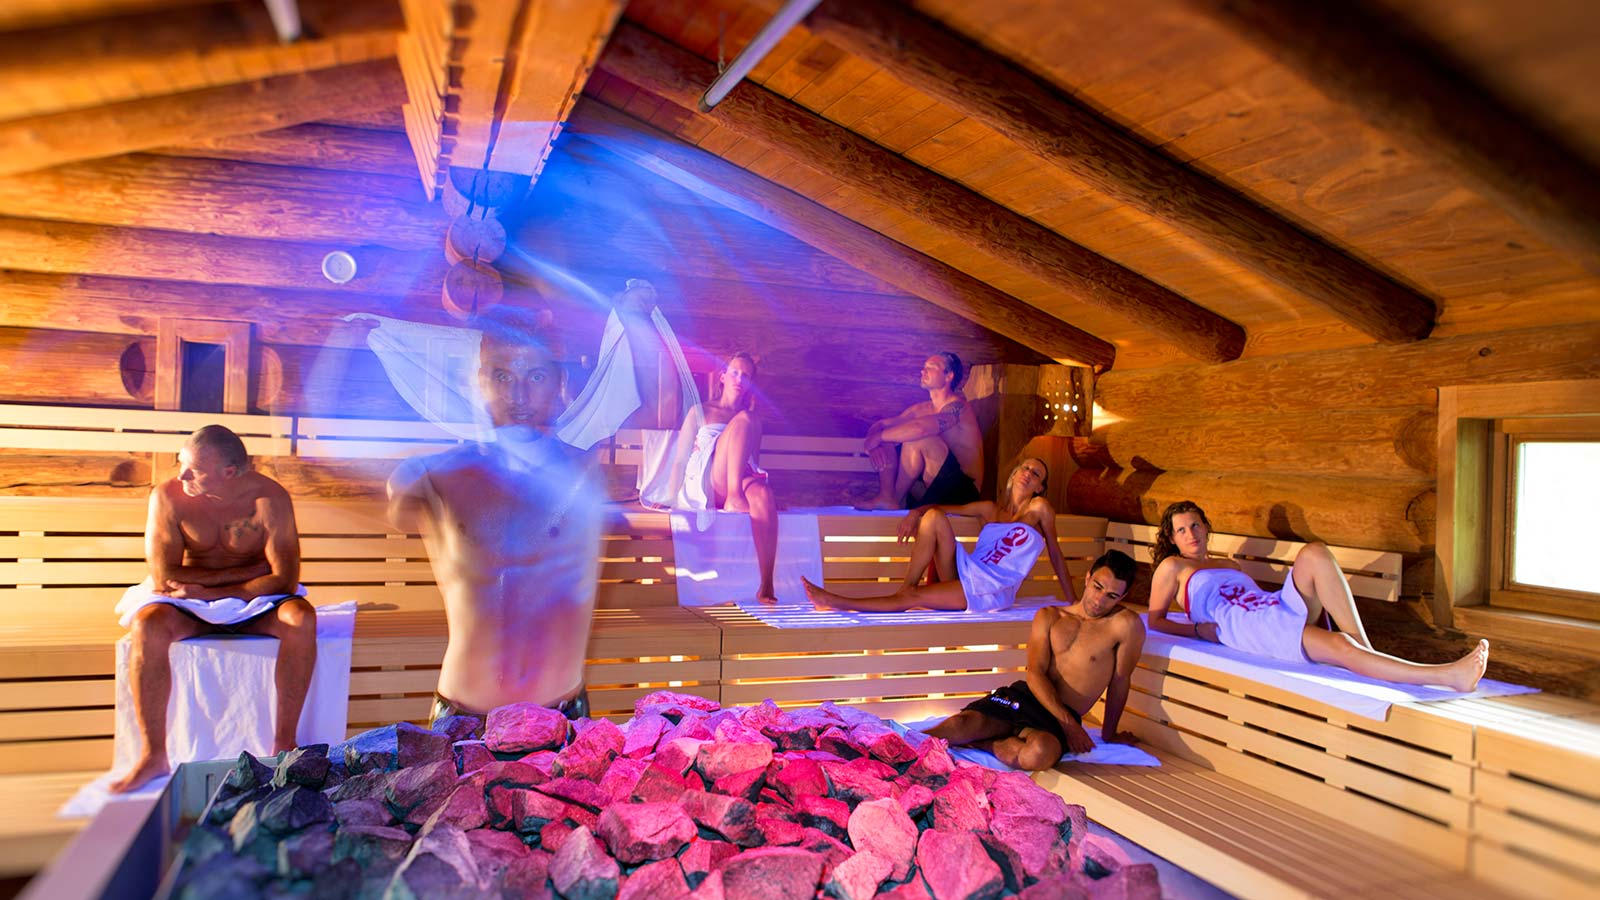 Aufguss all'interno della sauna dell'area wellness dell'Hotel Teresa